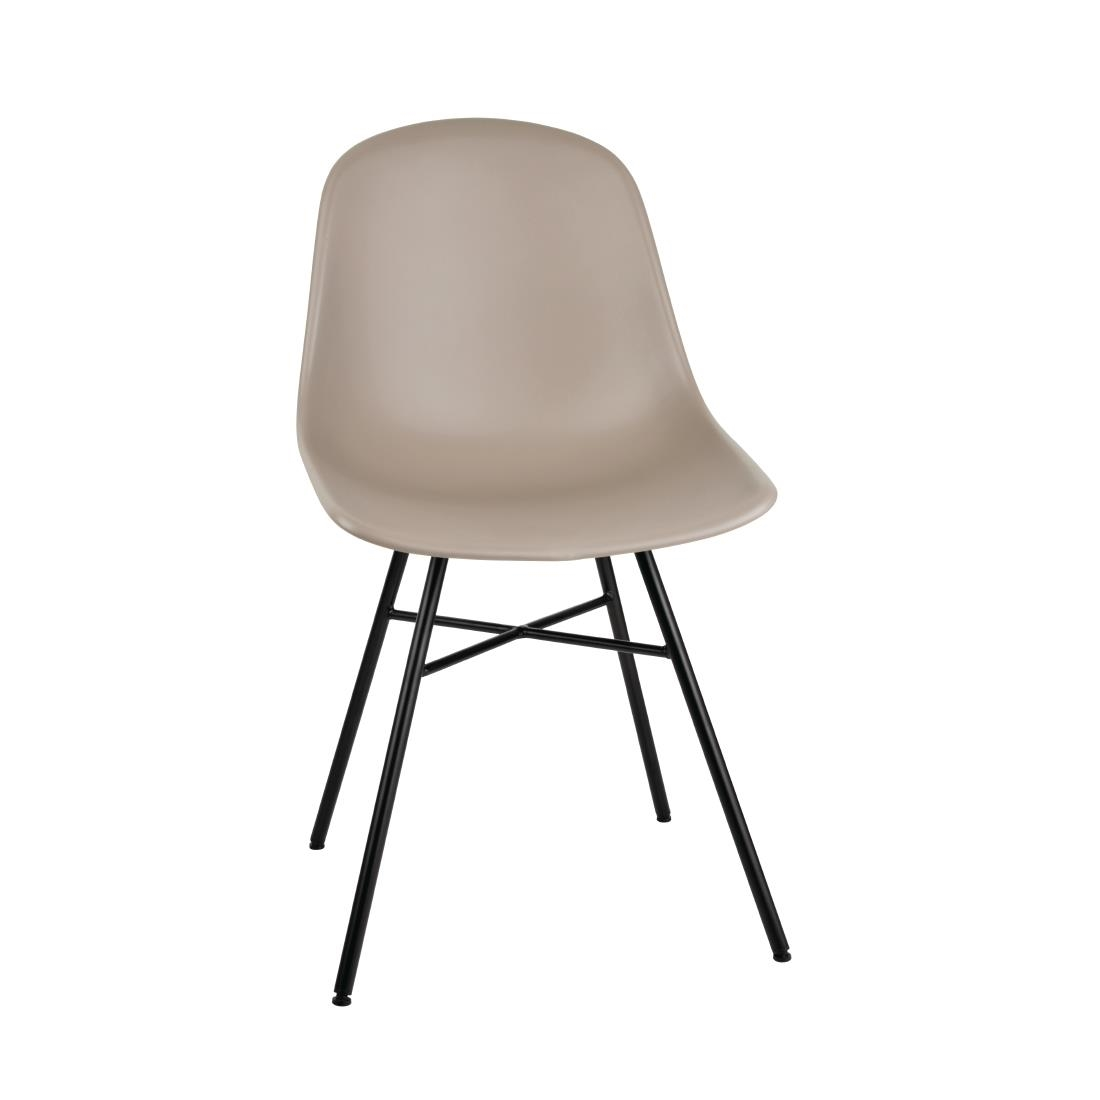 Image of Bolero Arlo Side Chair with Metal Frame Coffee (Pack of 2) Pack of 2